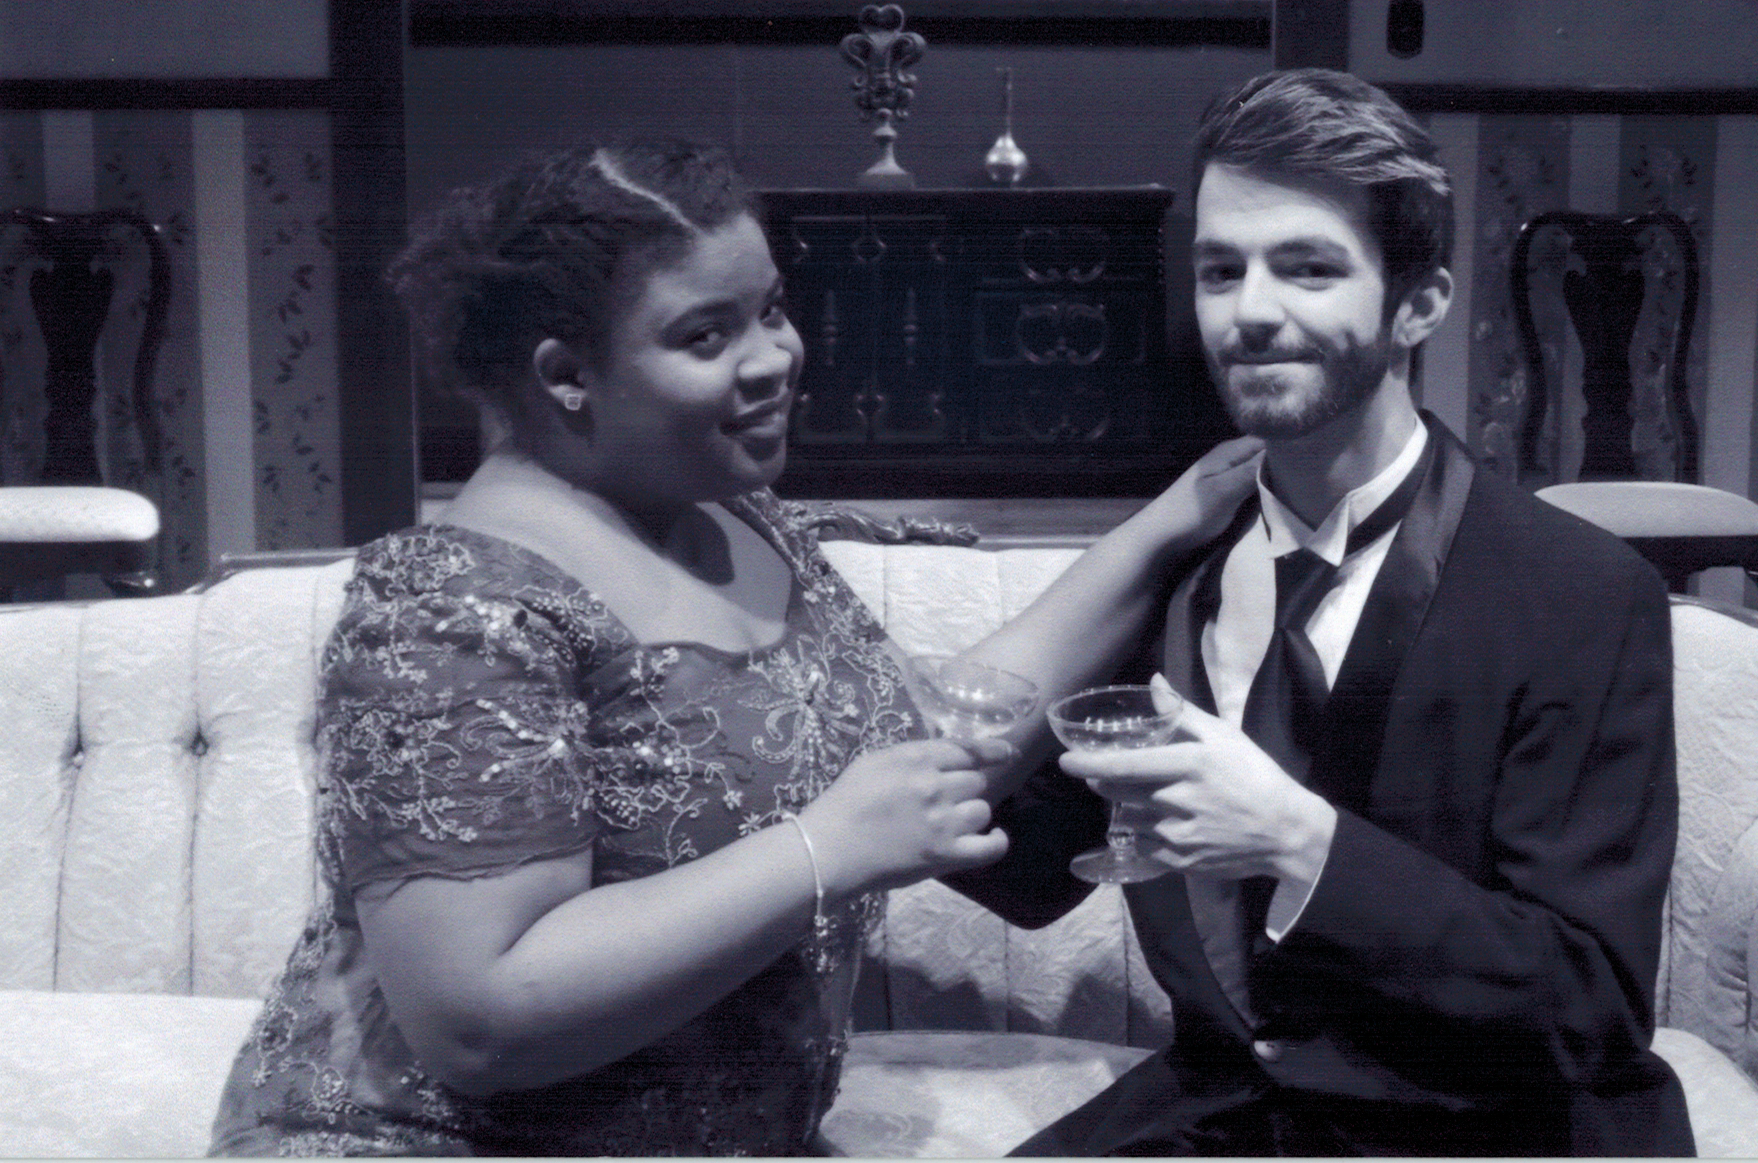 Kennedy Cooper as Ruth and Jesse Mattox as Charles | Photo by Steven Ruth